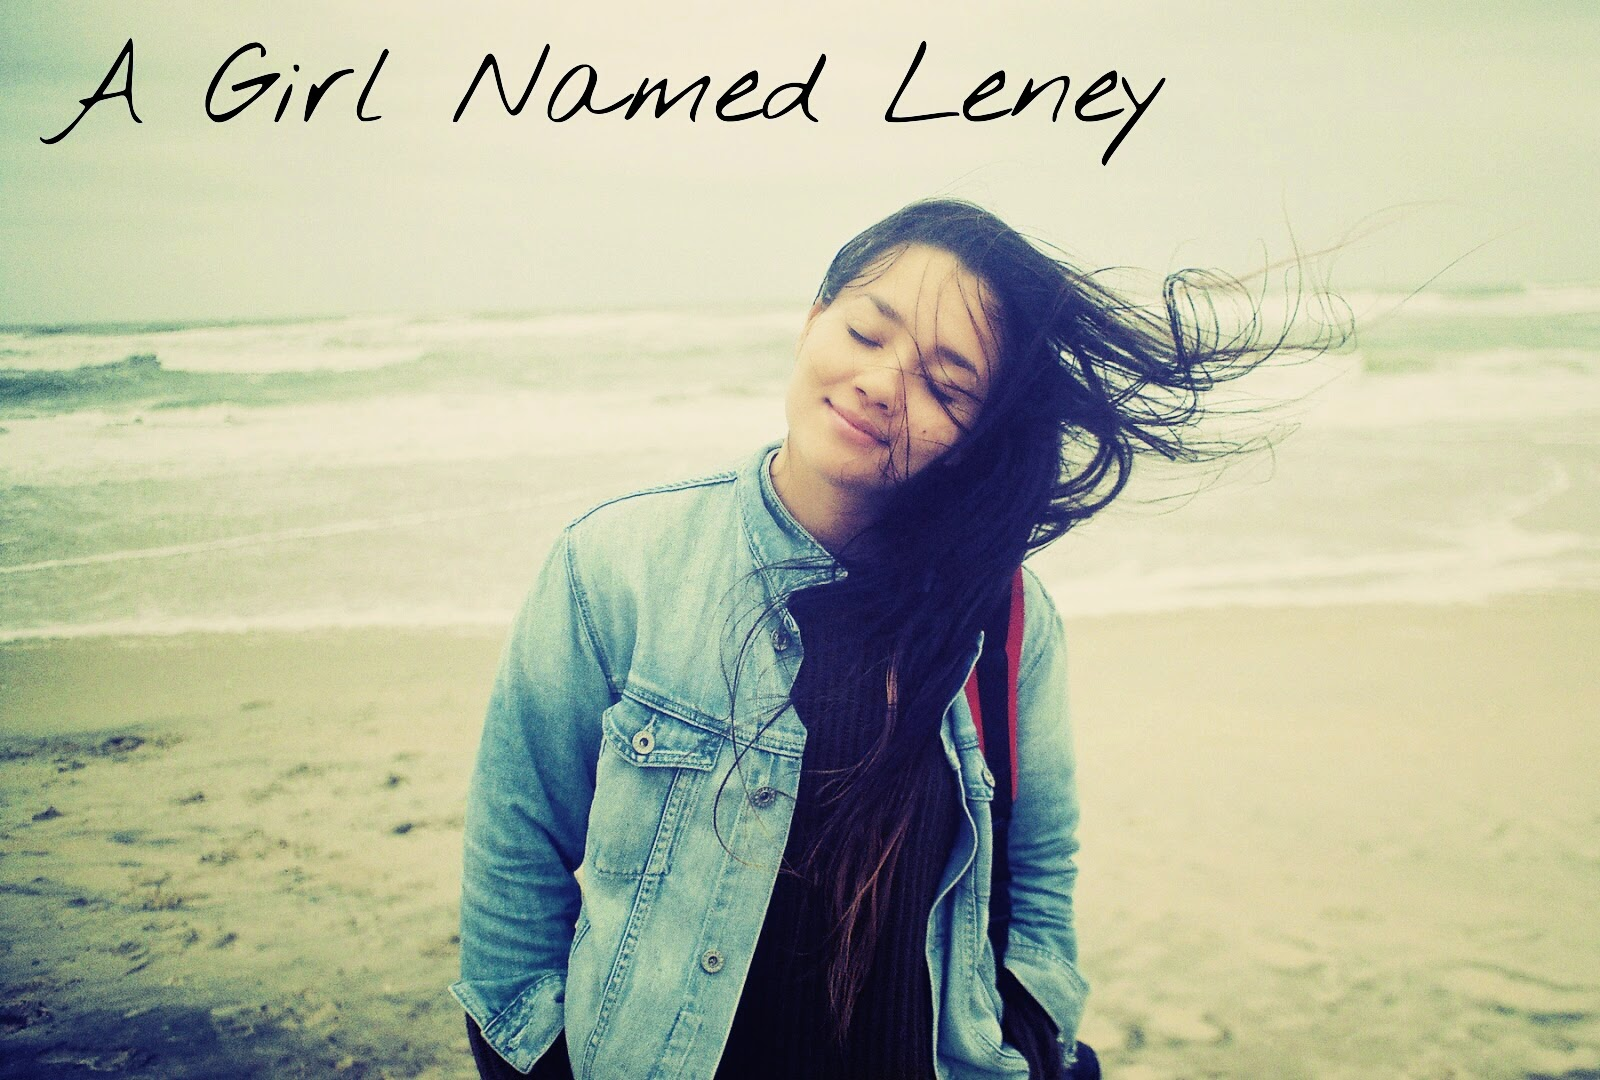 Girl Named Leney Hair In Wind